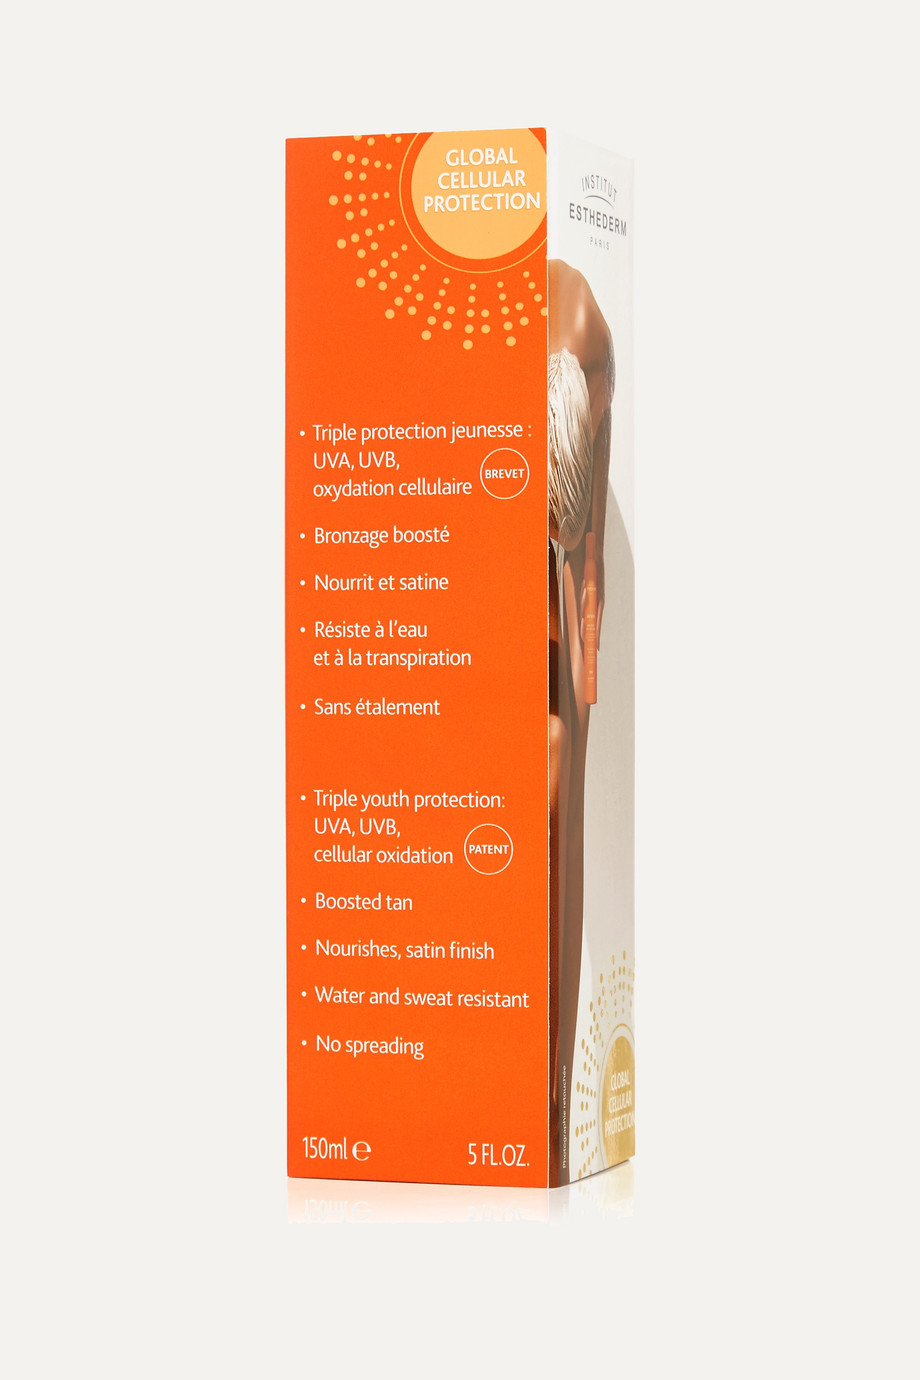 Institut Esthederm Adptasun Protective Silky Tanning Body Mist - Moderate, 150ml